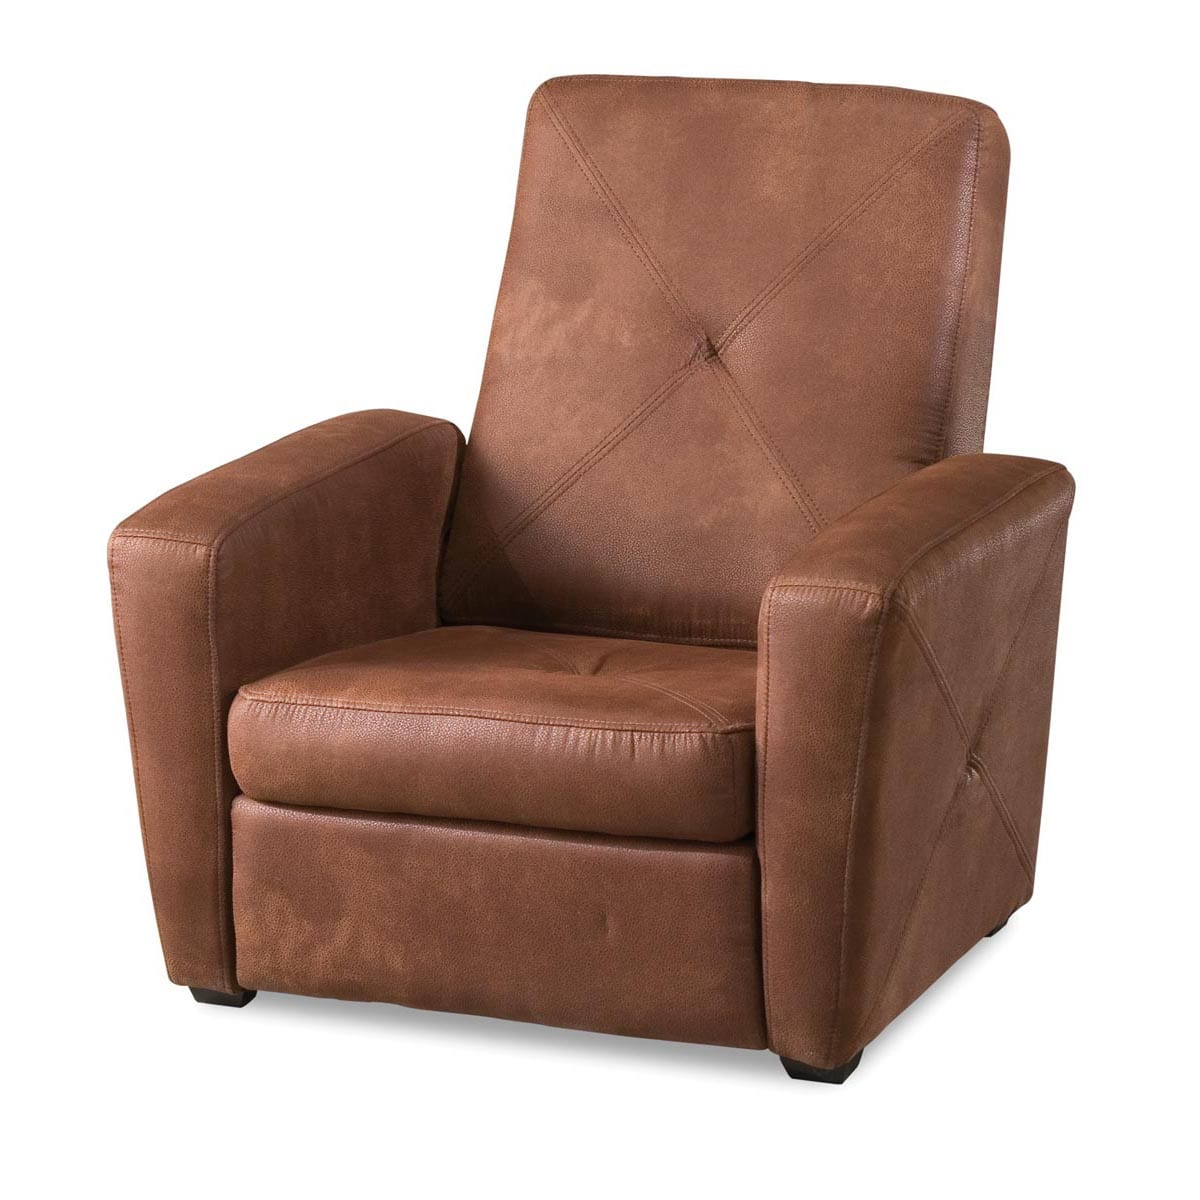 Shop rustic brown microfiber foldable gaming chair free shipping today overstock com 7569466